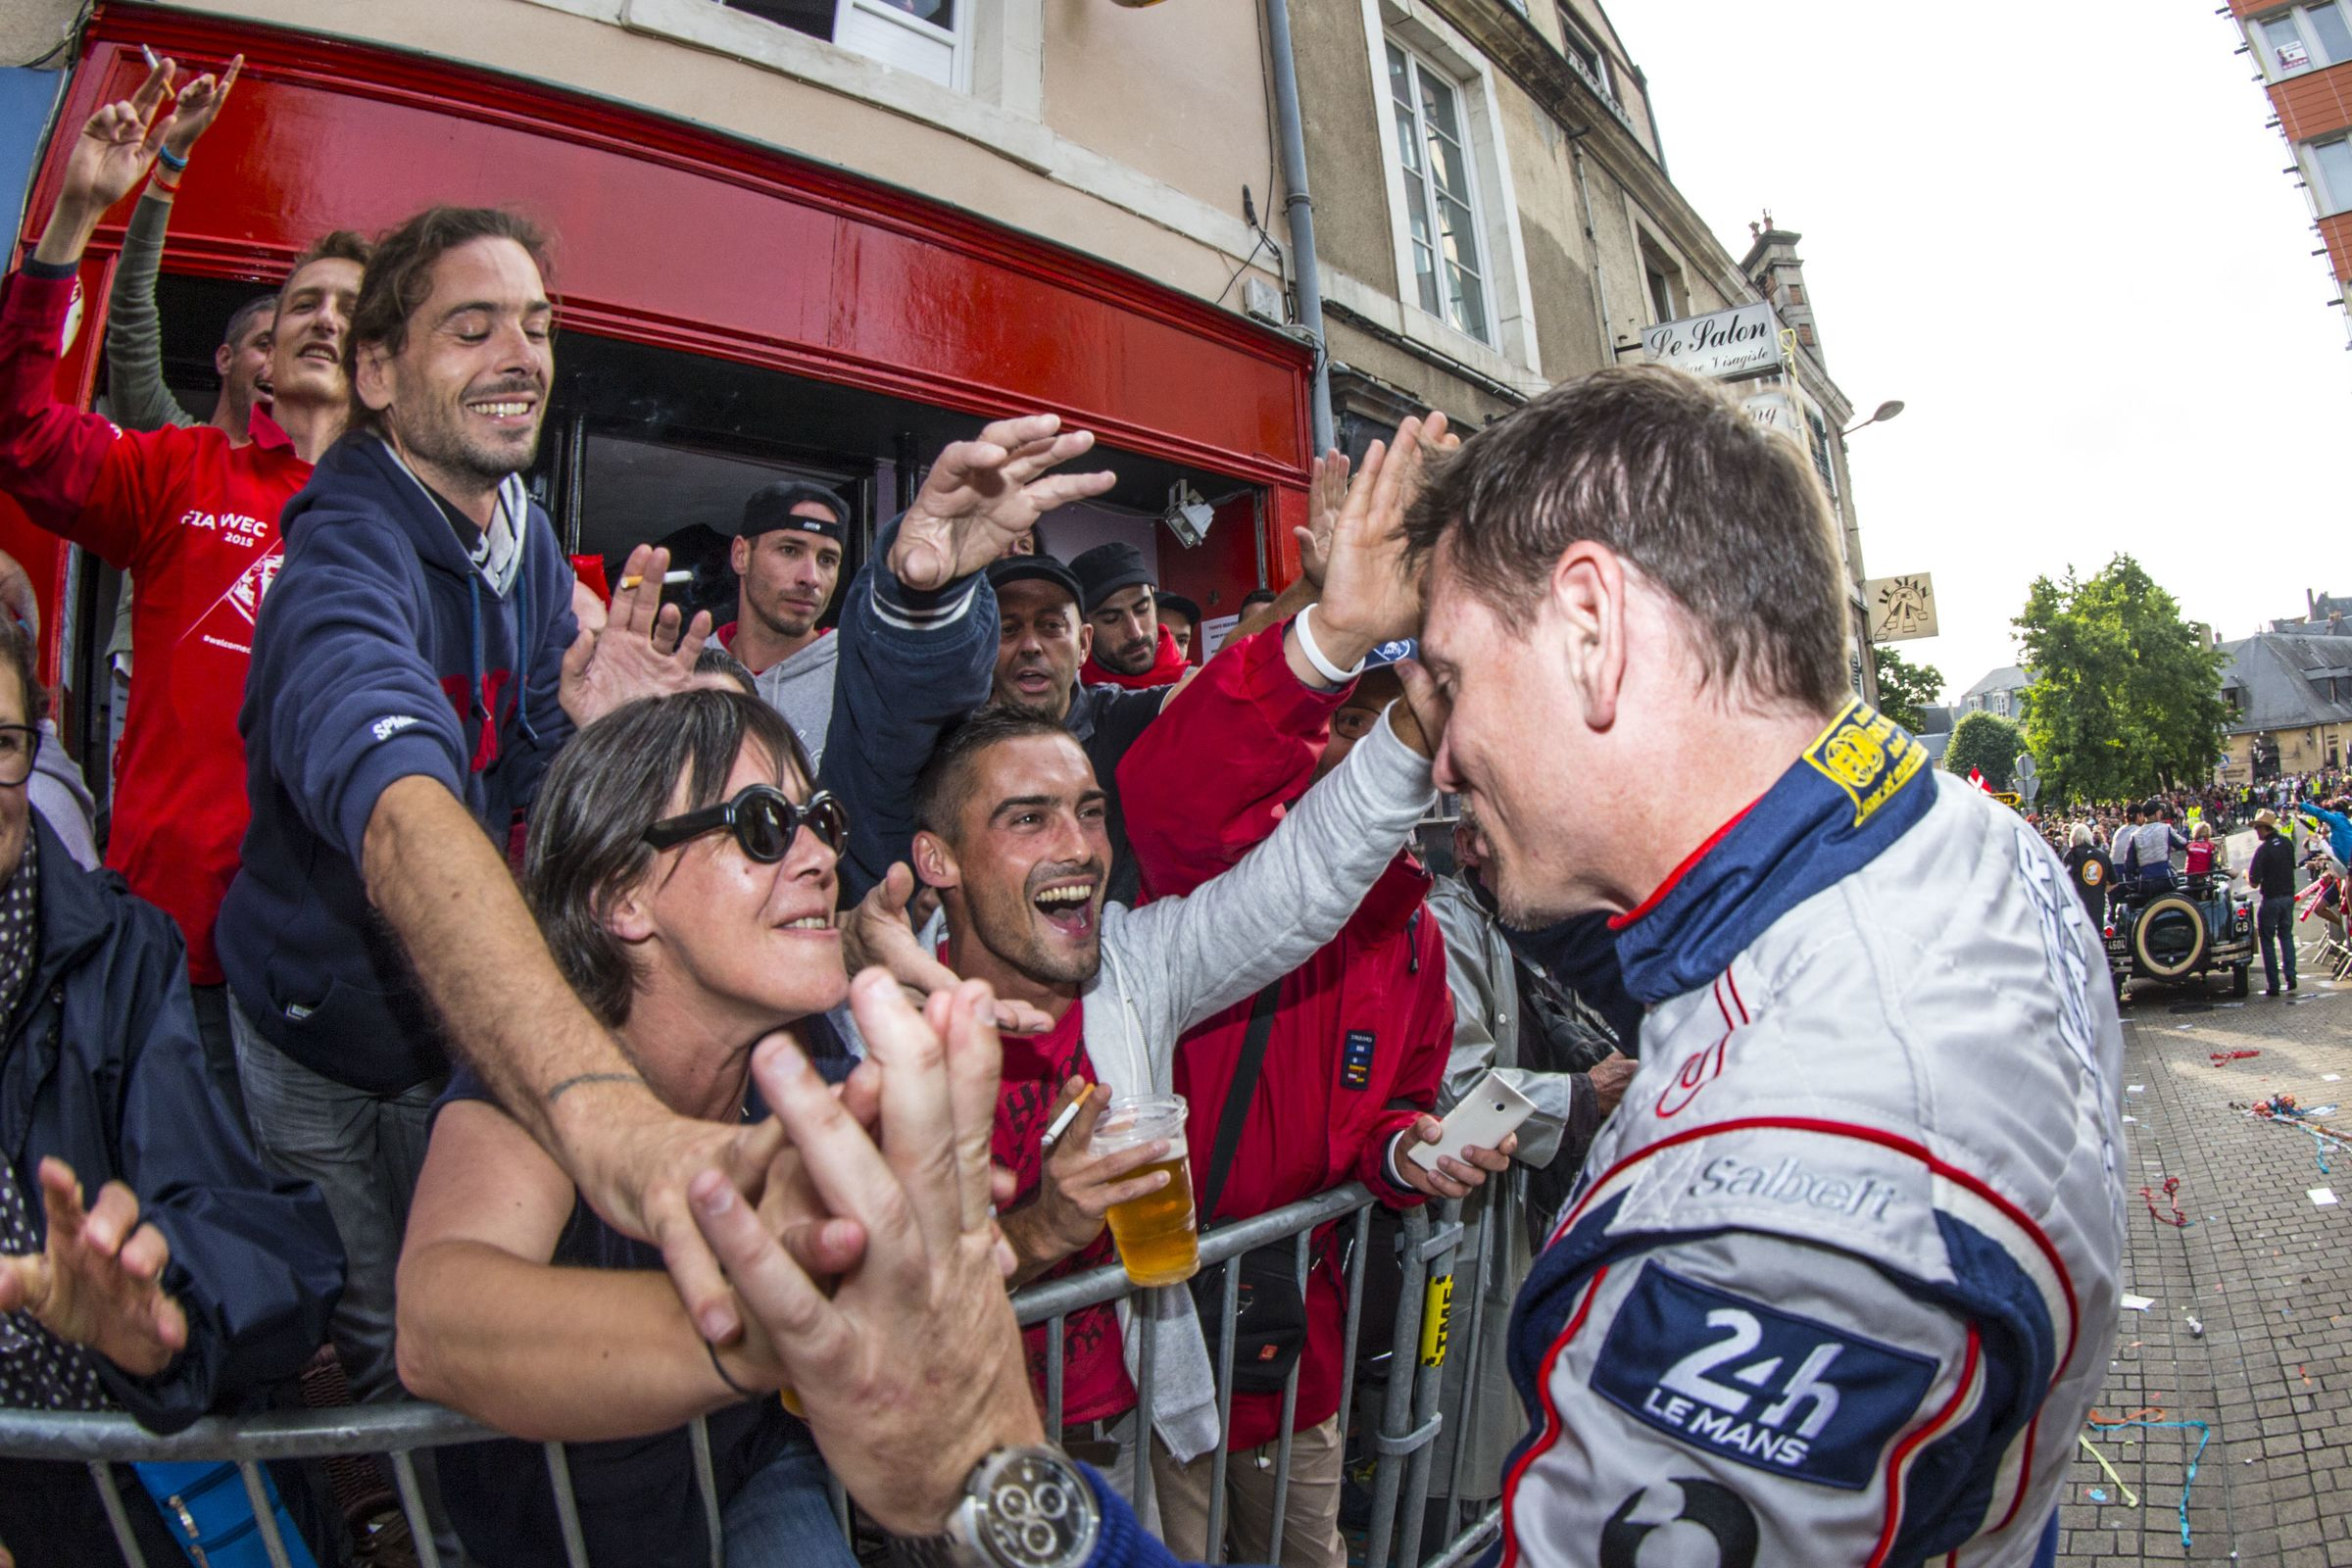 Le Salon Le Mans An American Rookie At Le Mans What They Don T Tell You Part Deux